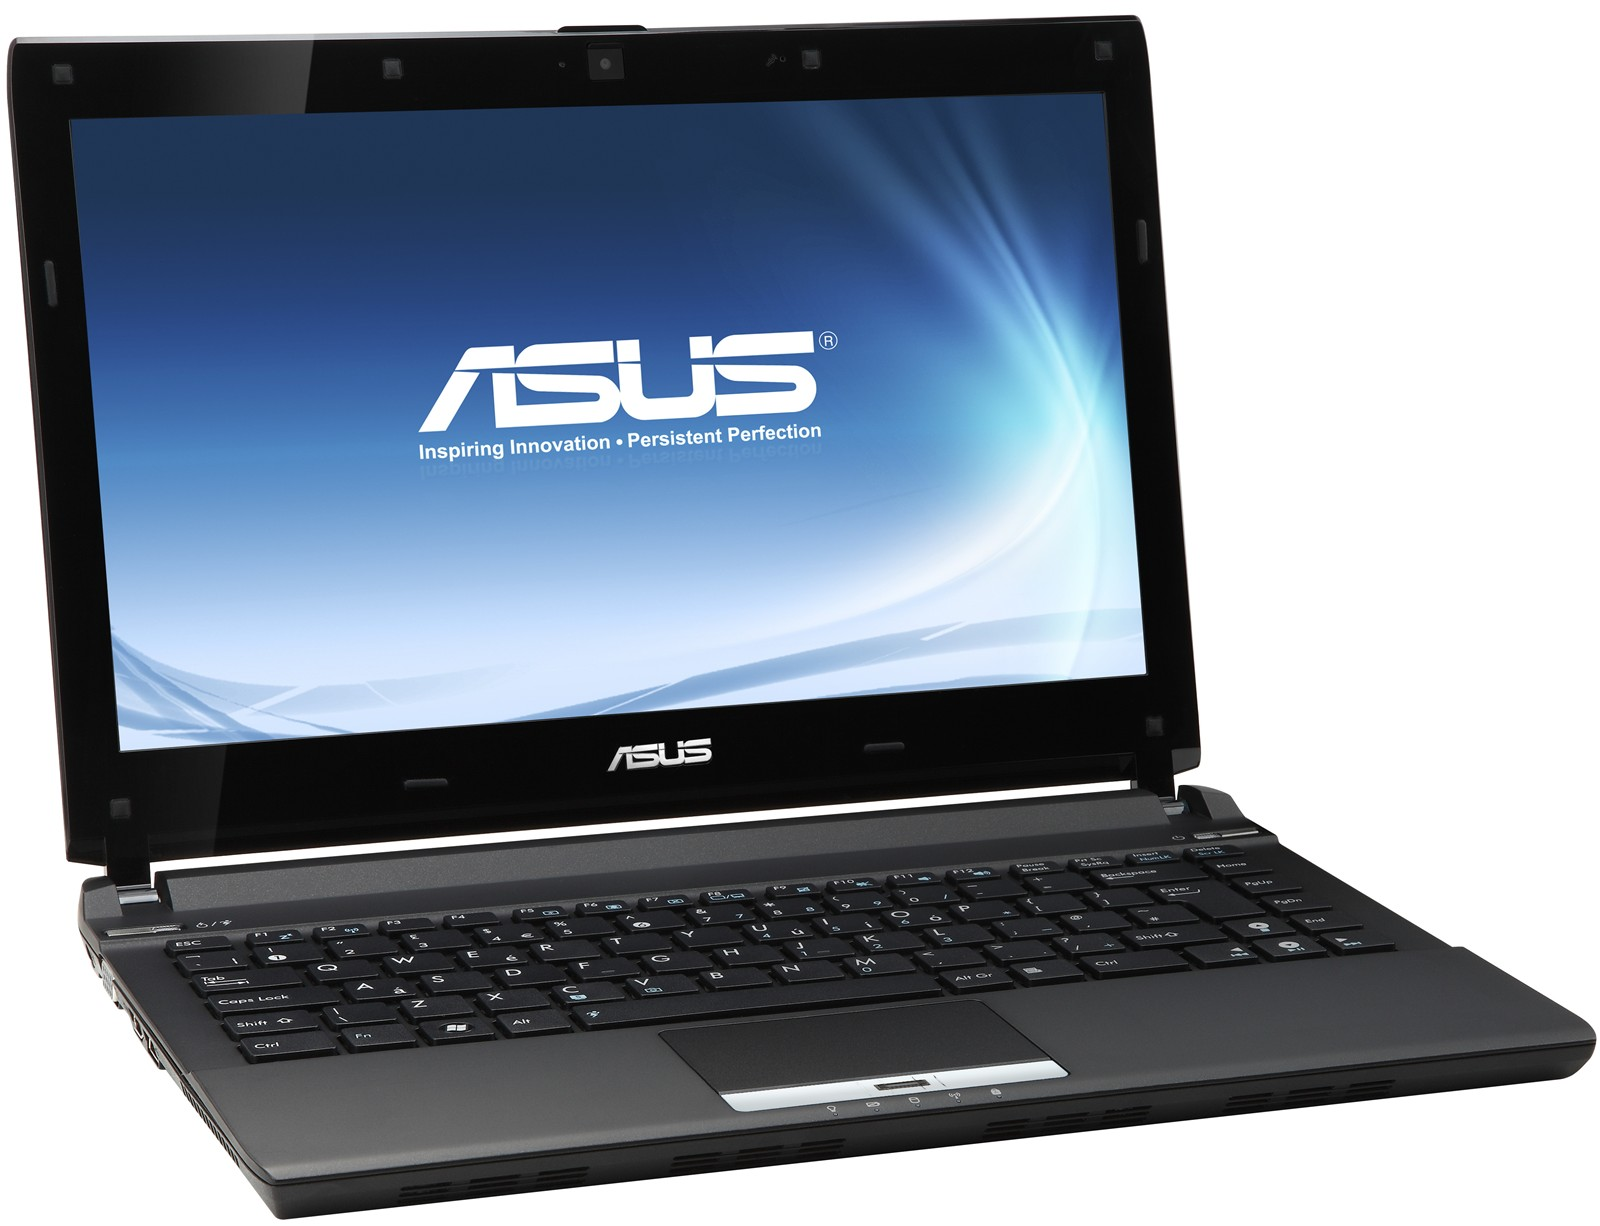 Asus F75a Ab31 17 3 Inch Led Laptop Review